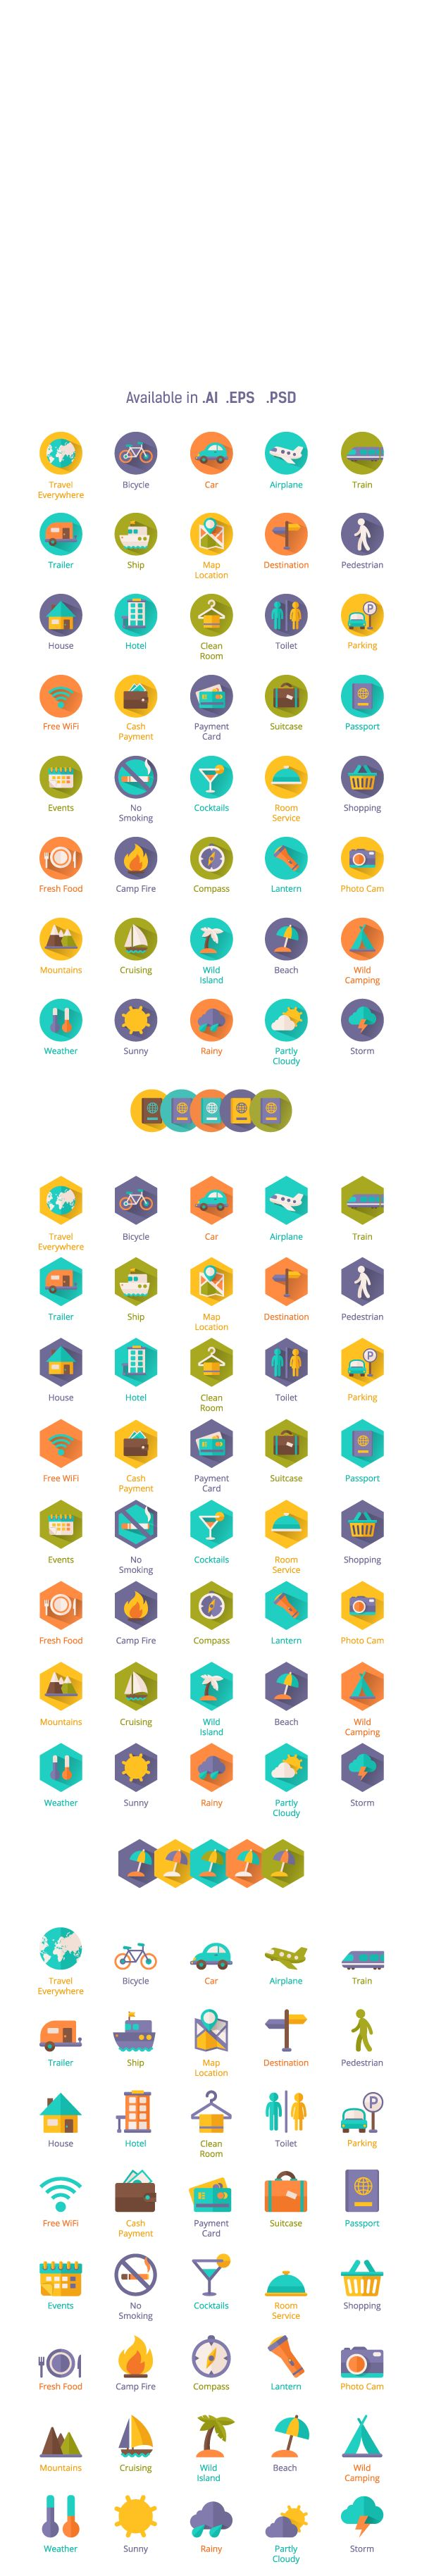 Shady I Con, Travel Flat Icons by Stella Caraman, via Behance